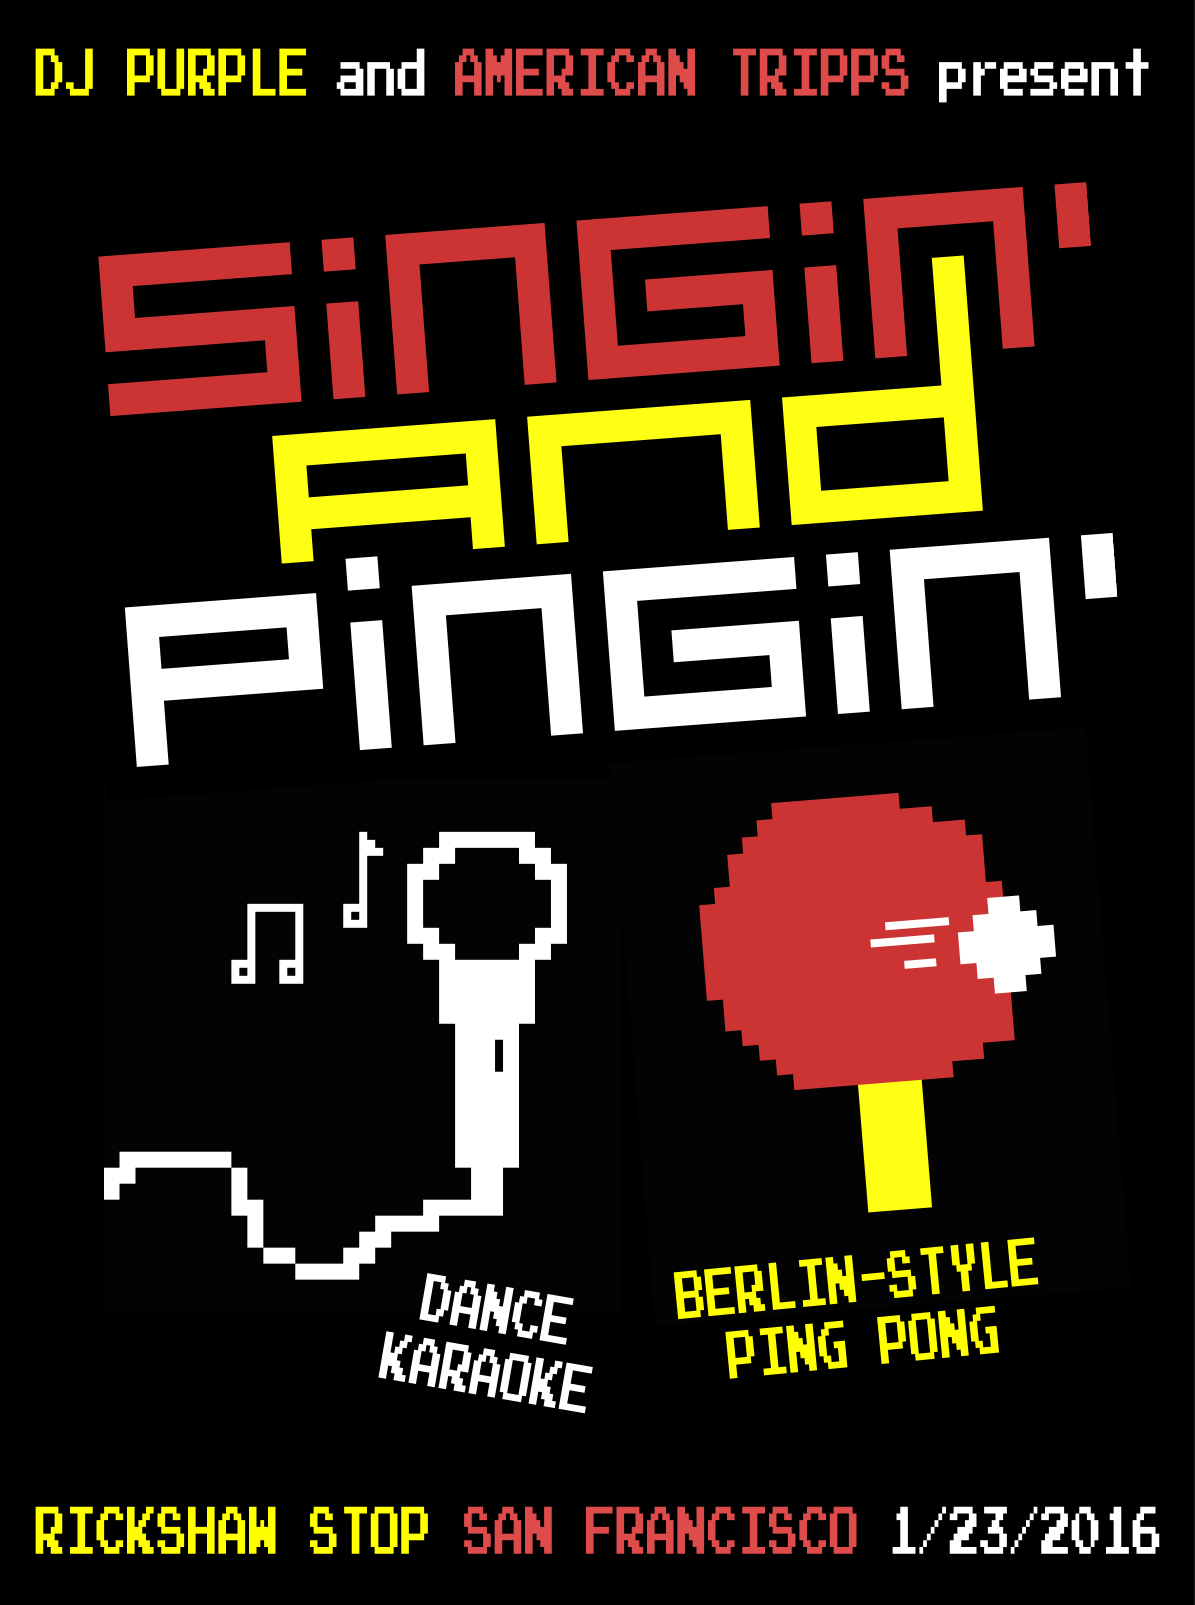 Return of Singin' & Pingin' 2016